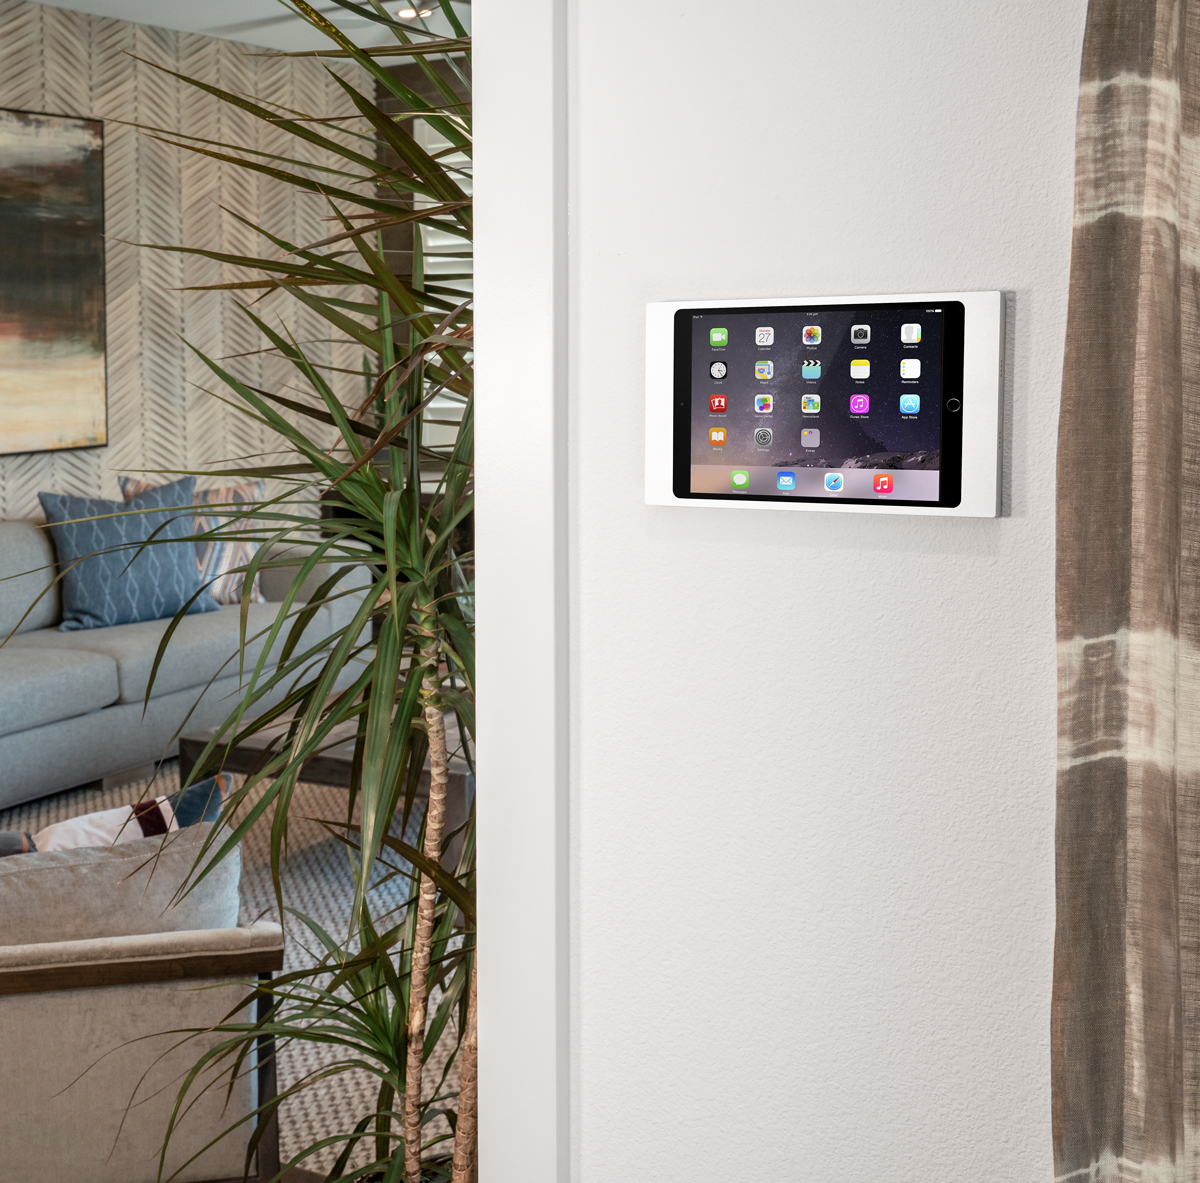 Surface Mount, the silver iPad wall mount by IPORT installed in a home.